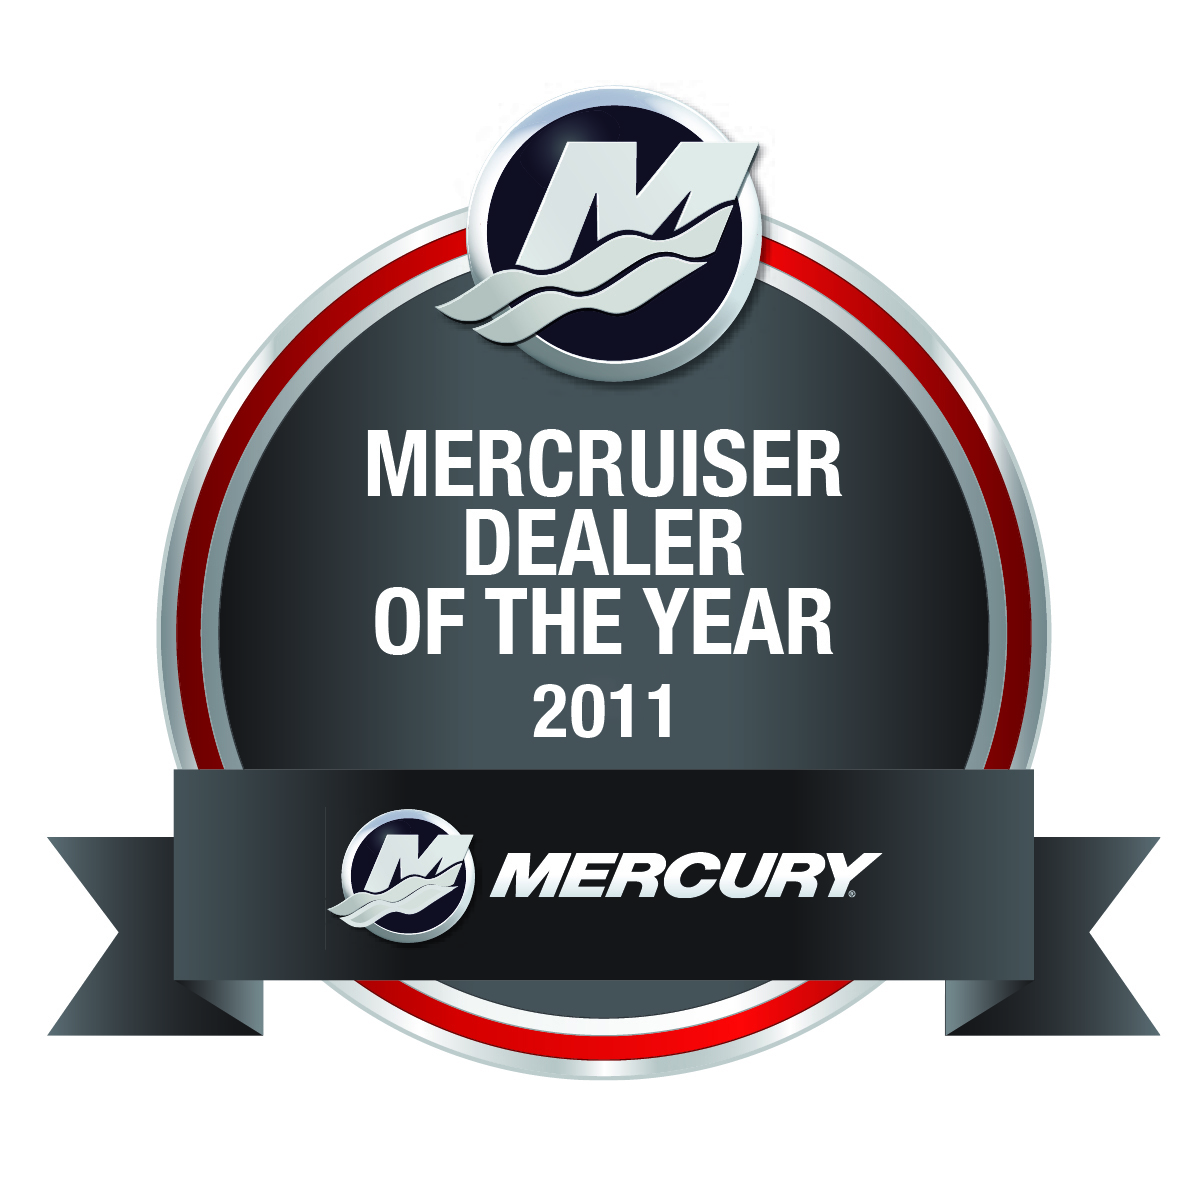 Mercruiser Dealer of the Year Hitech Marine 2011